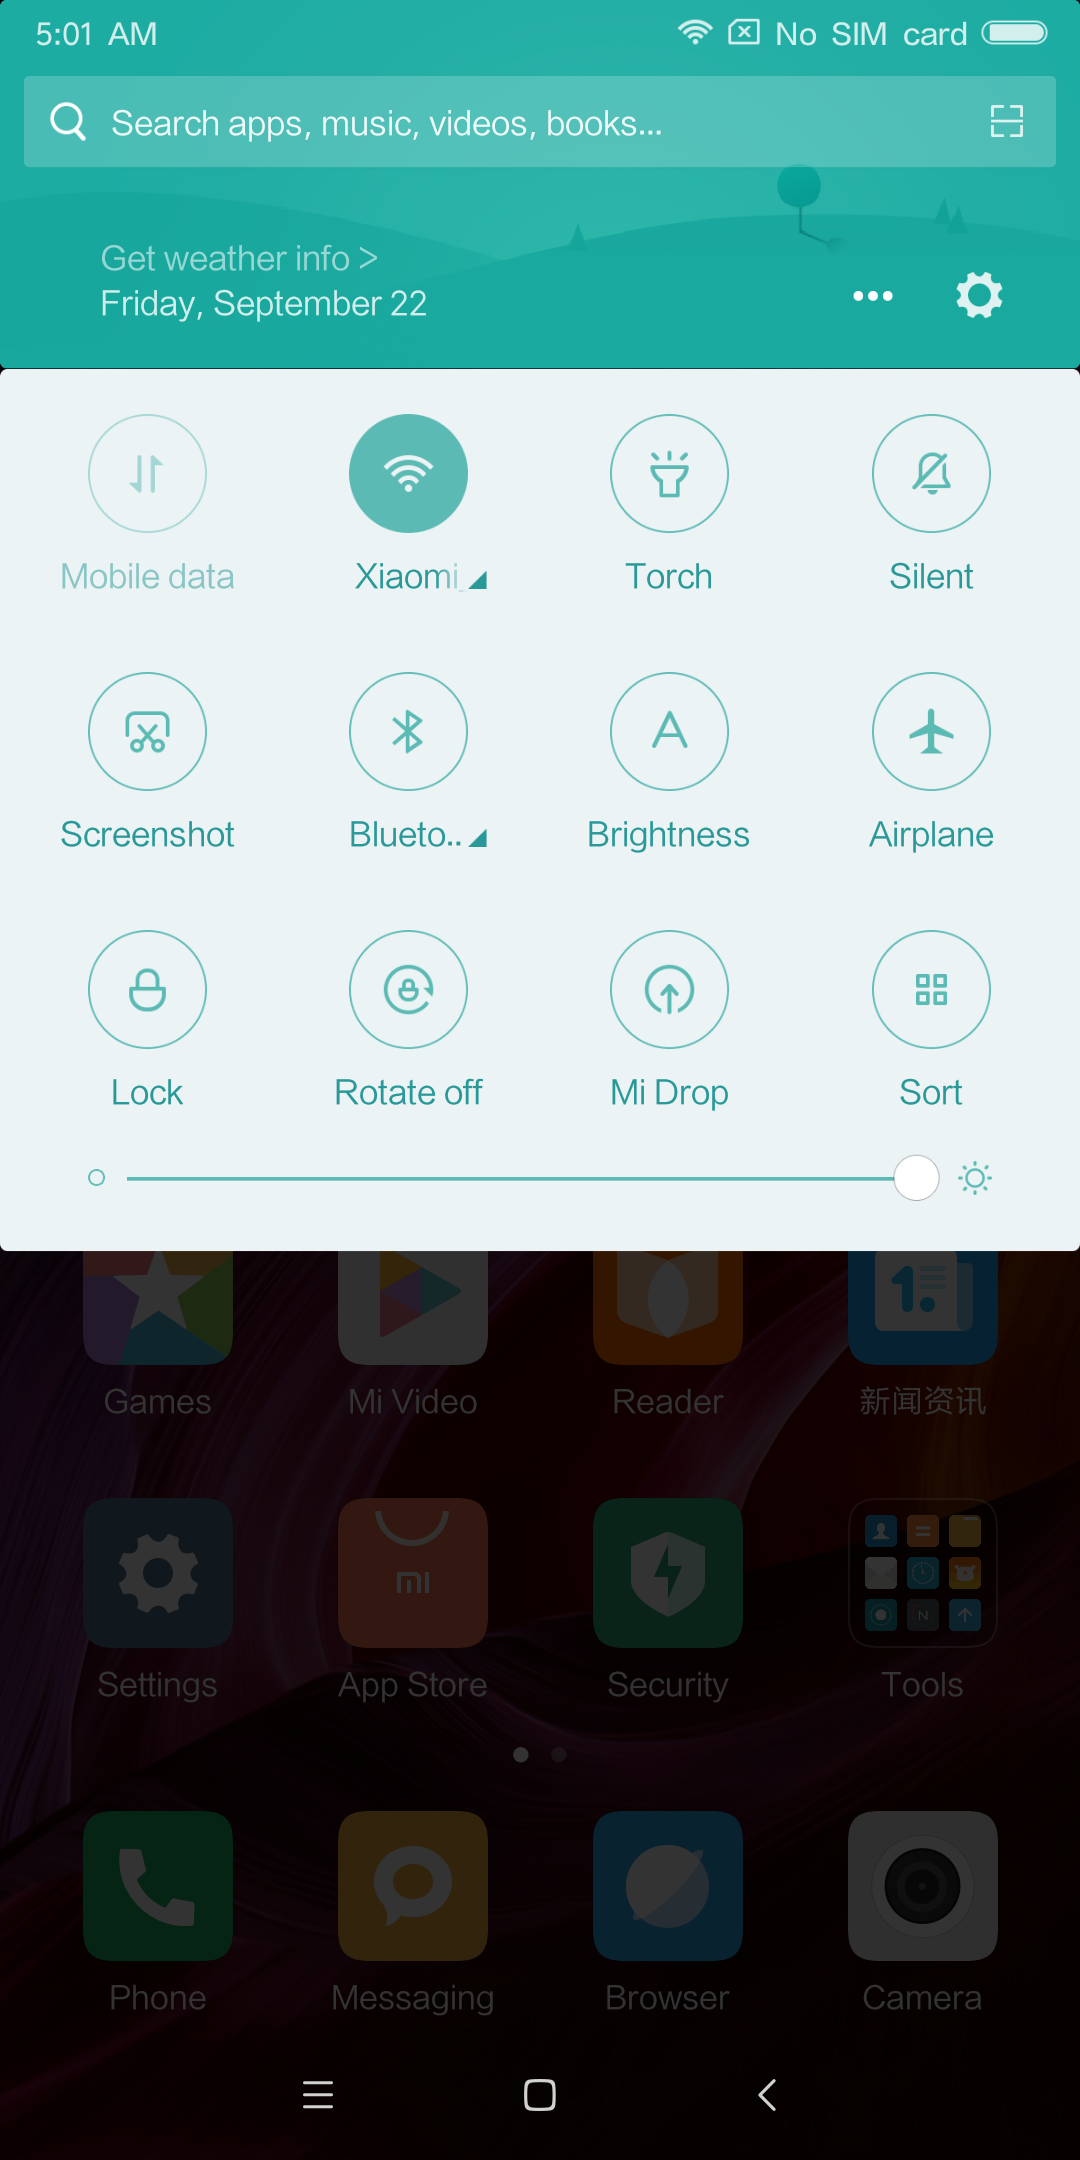 Screenshot 2017 09 22 05 01 16 092 com.miui .home